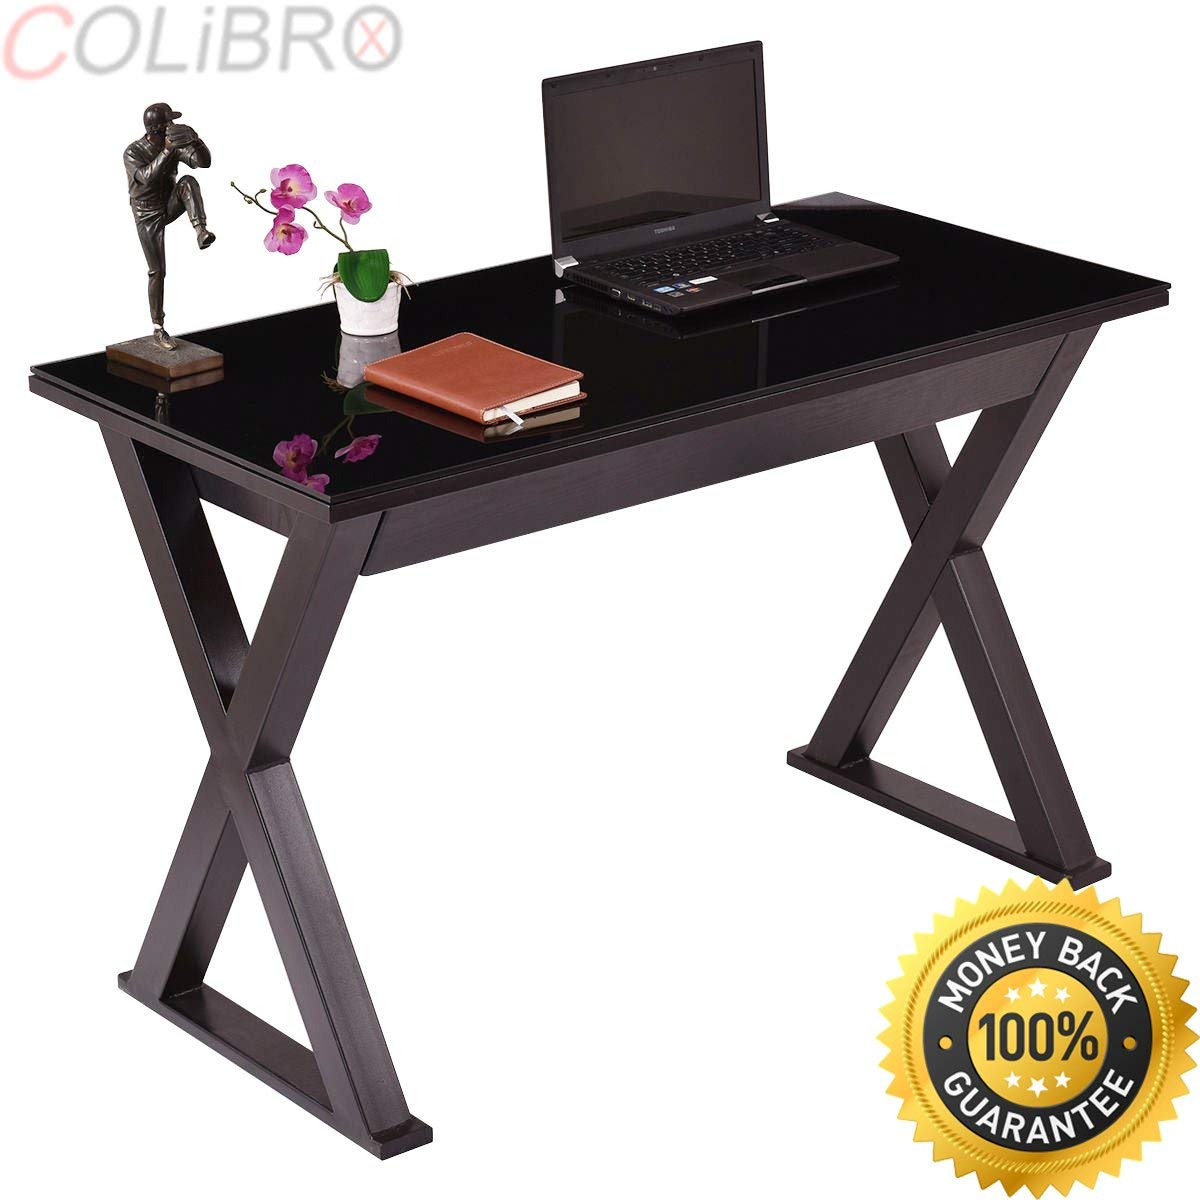 COLIBROX--Tempered Glass Top Computer Desk PC Laptop Table Writing Workstation w/ Drawer.folding wooden computer desk pc laptop table large writing study workstation.mainstays glass top computer desk.